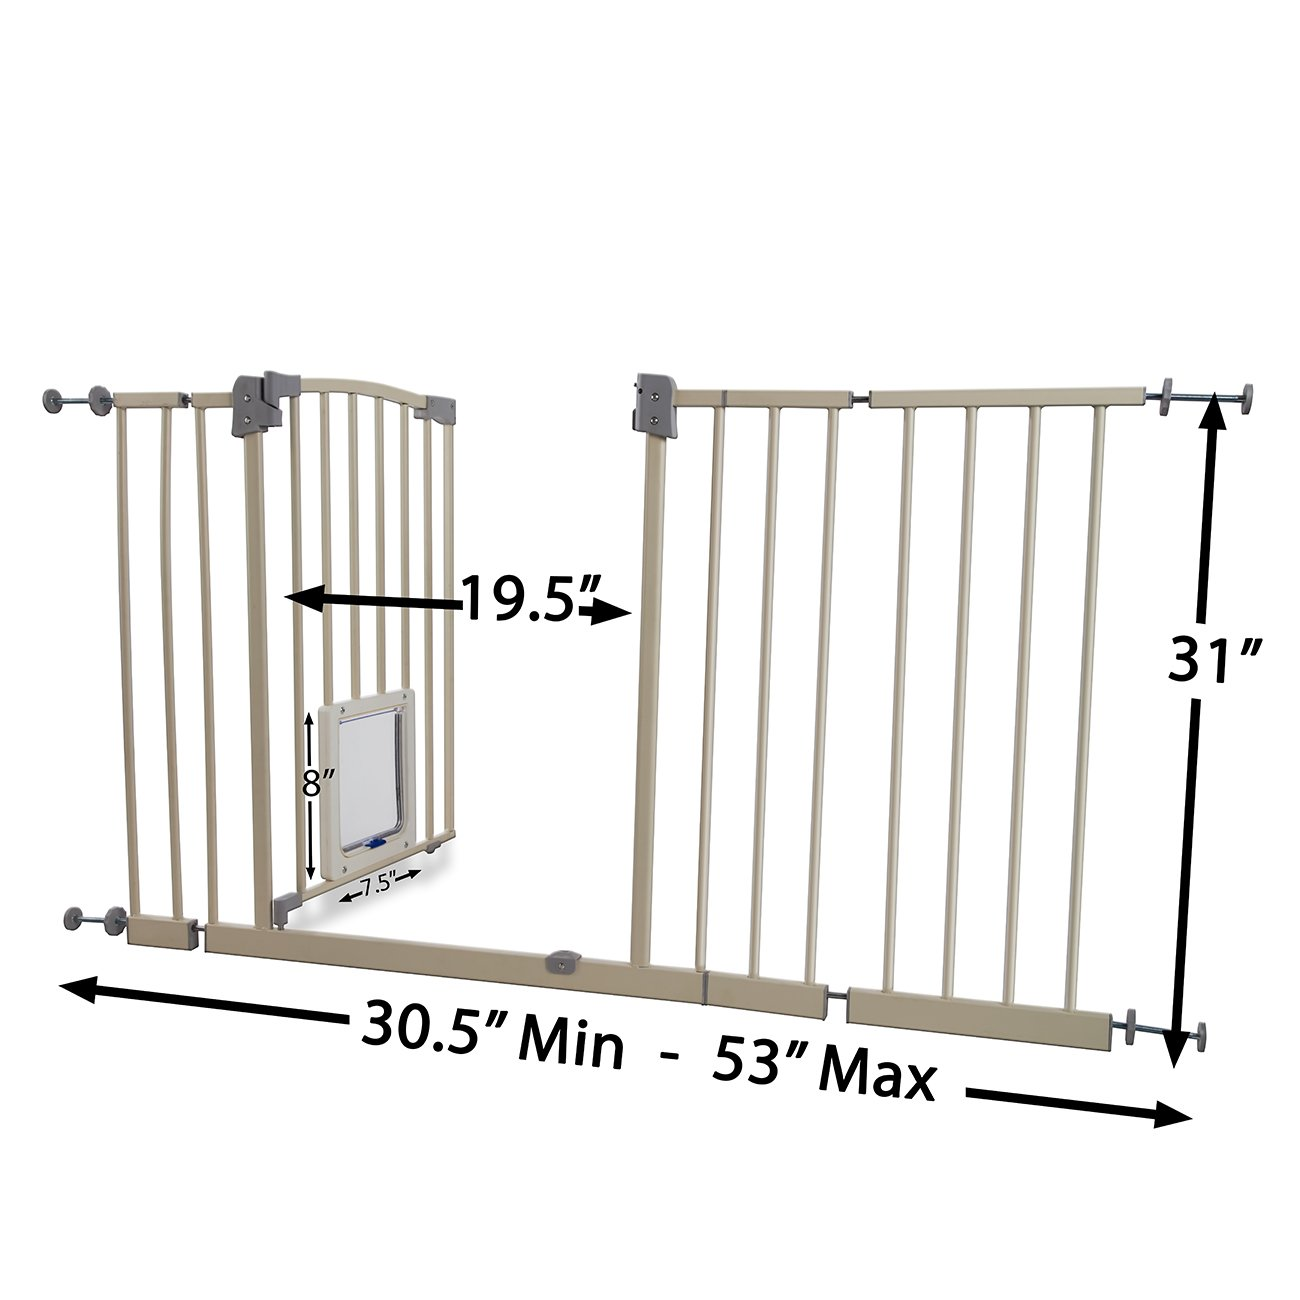 Paws & Pals Dog Gate Multifunctional Indoor Metal Baby Barrier - Adjustable Tall-Wide Fence for House Doorway with Lockable Pet Door Flap- 53'' Max Extendable by Paws & Pals (Image #3)